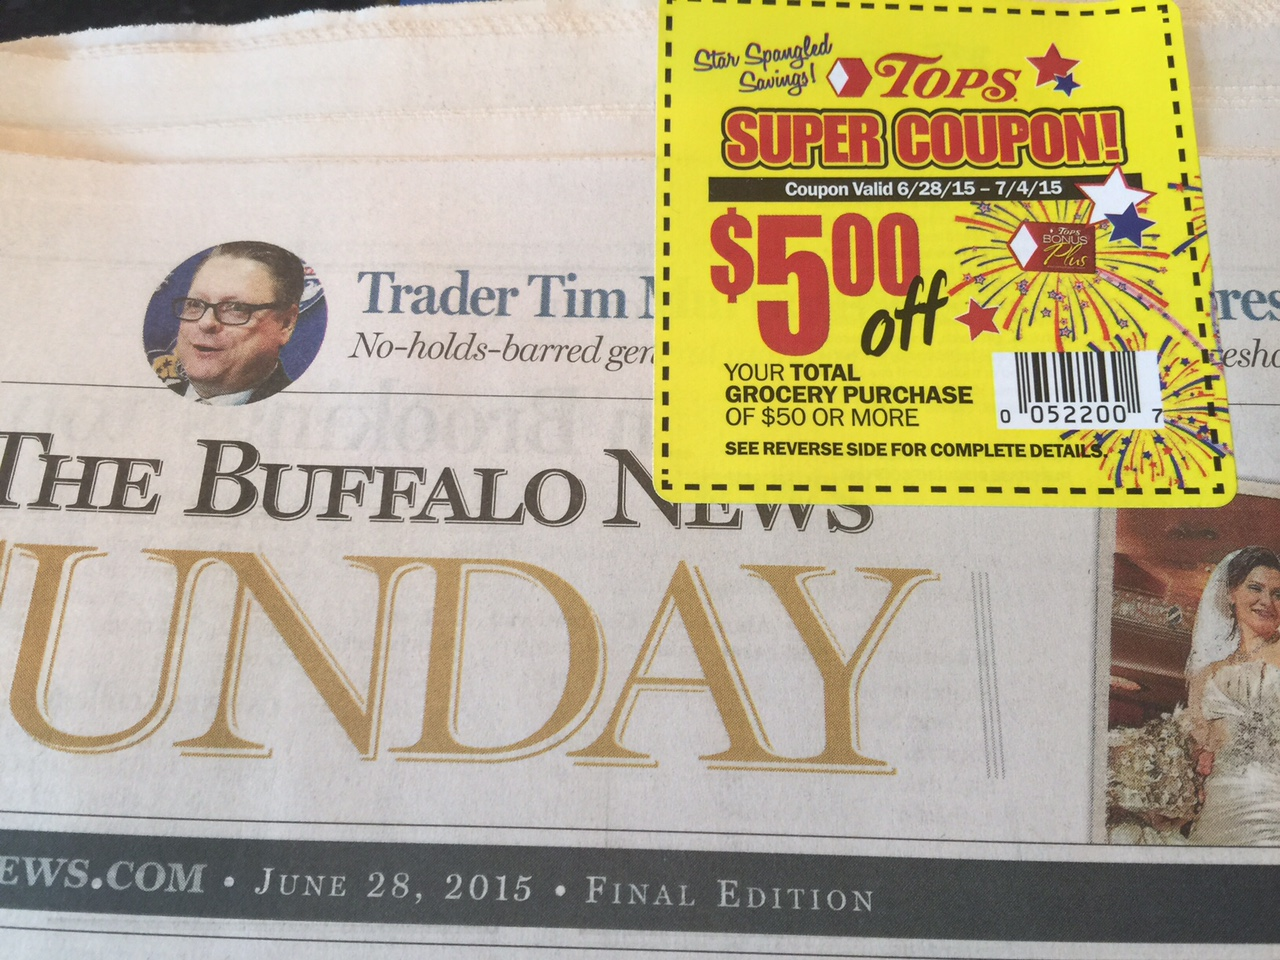 Sunday Coupon Inserts In Buffalo Newspaper June 28 Tops 5 Off 50